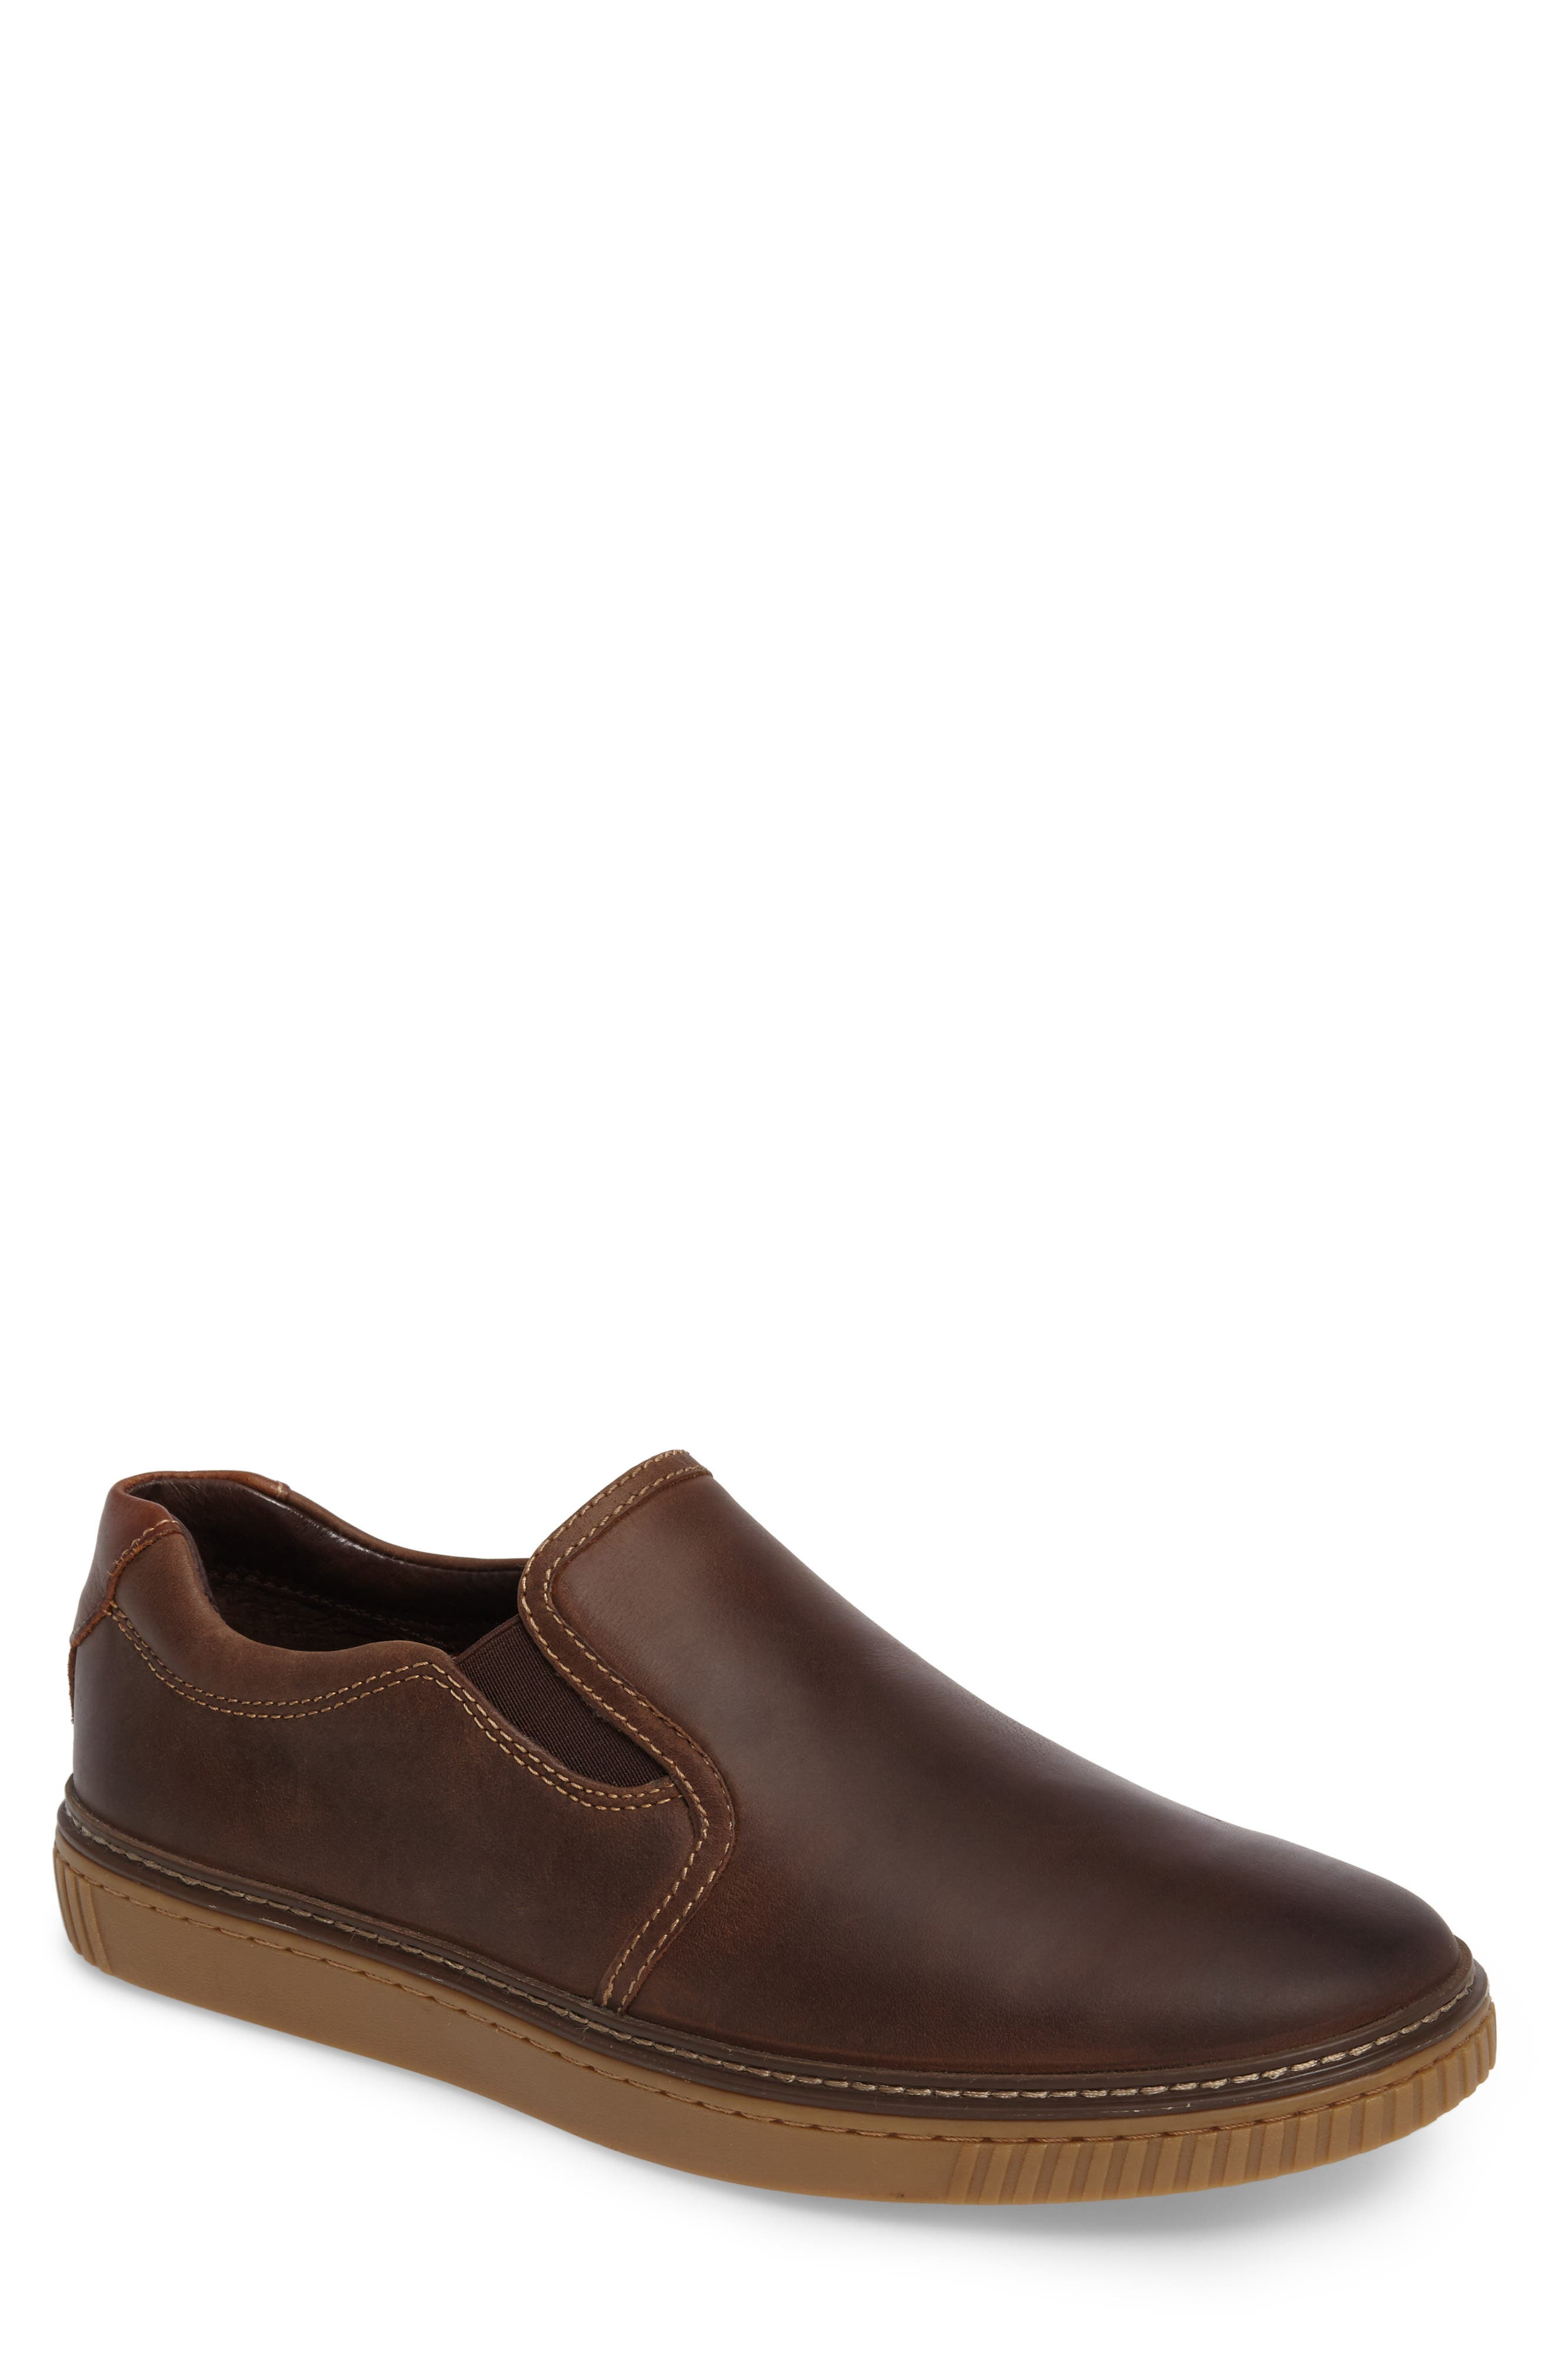 Wallace Slip-On Sneaker,                             Main thumbnail 1, color,                             Brown